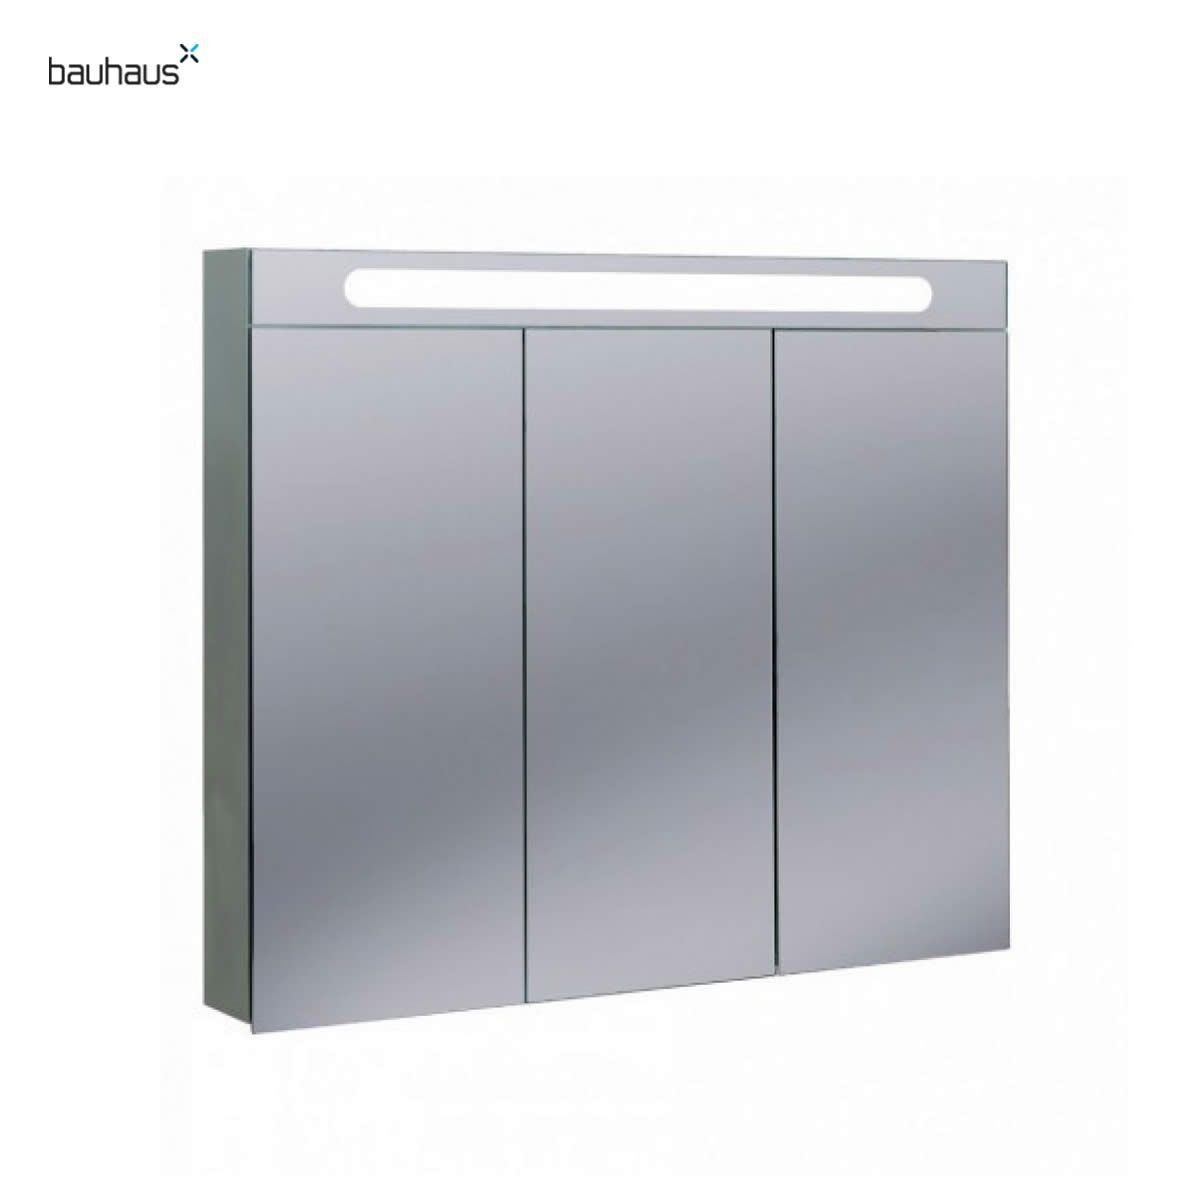 cabinet bauh541 cb9080al home bathroom furniture bathroom cabinets